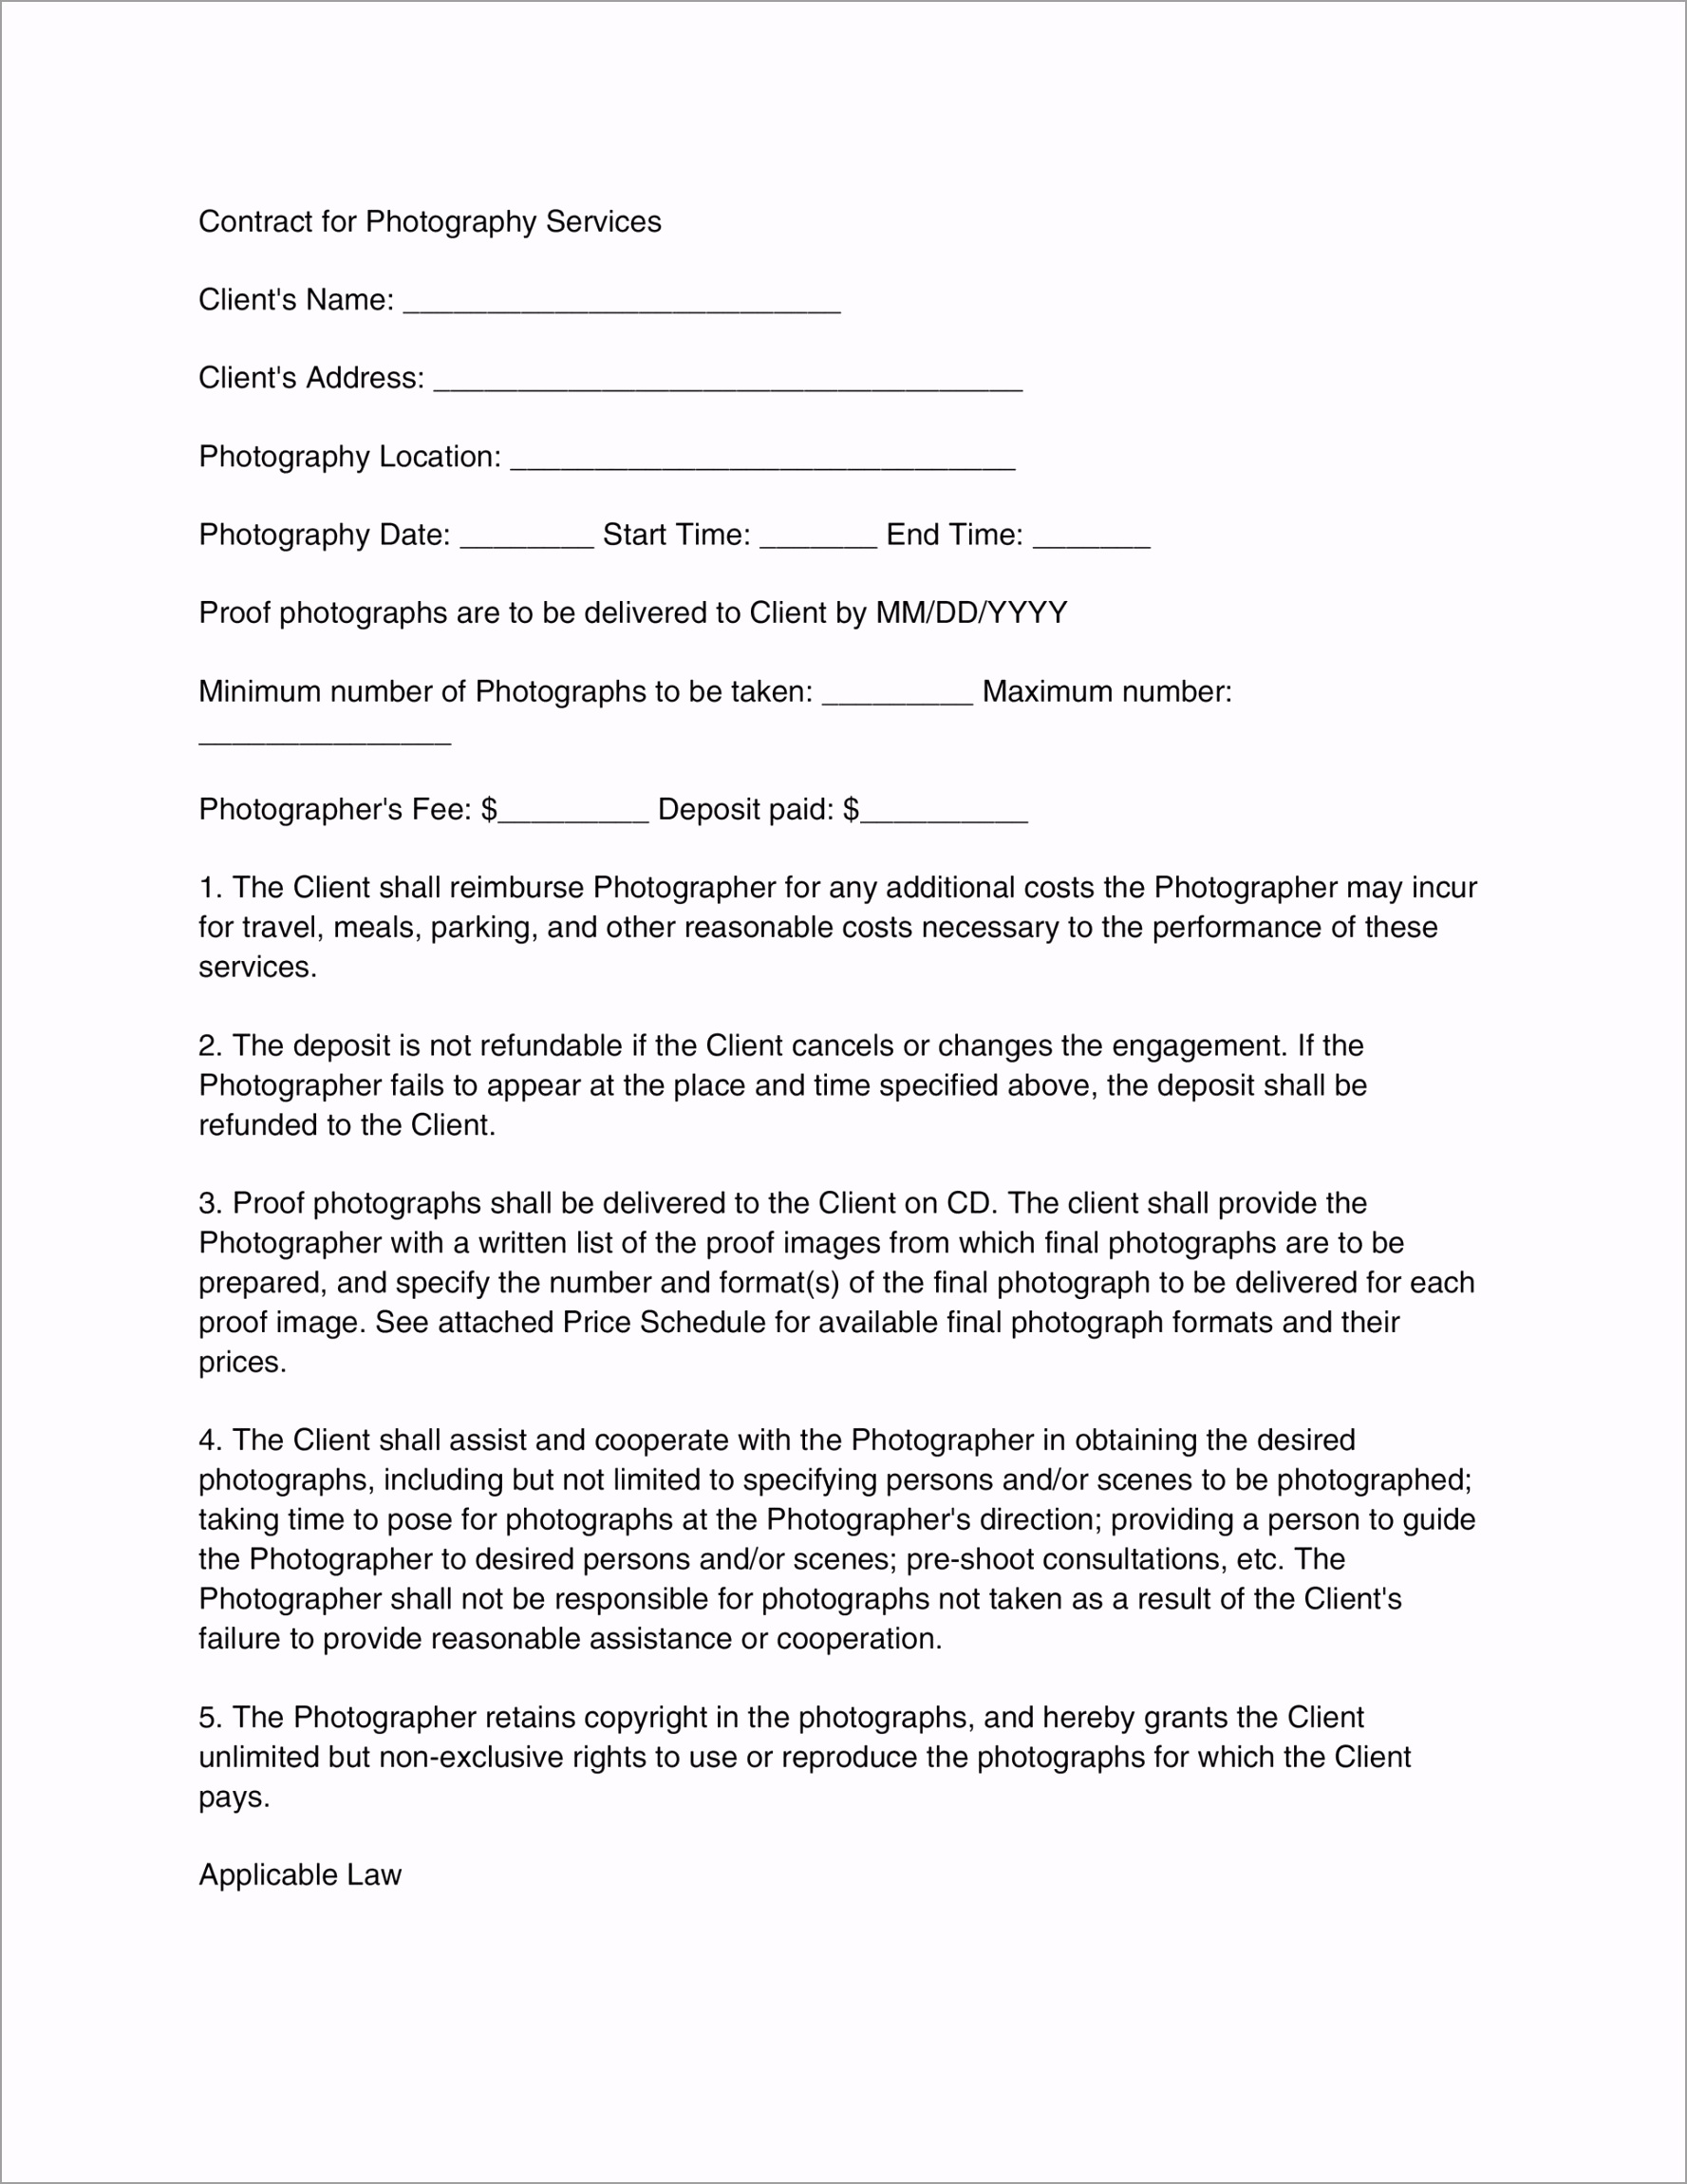 Contract Template 18 ontyr